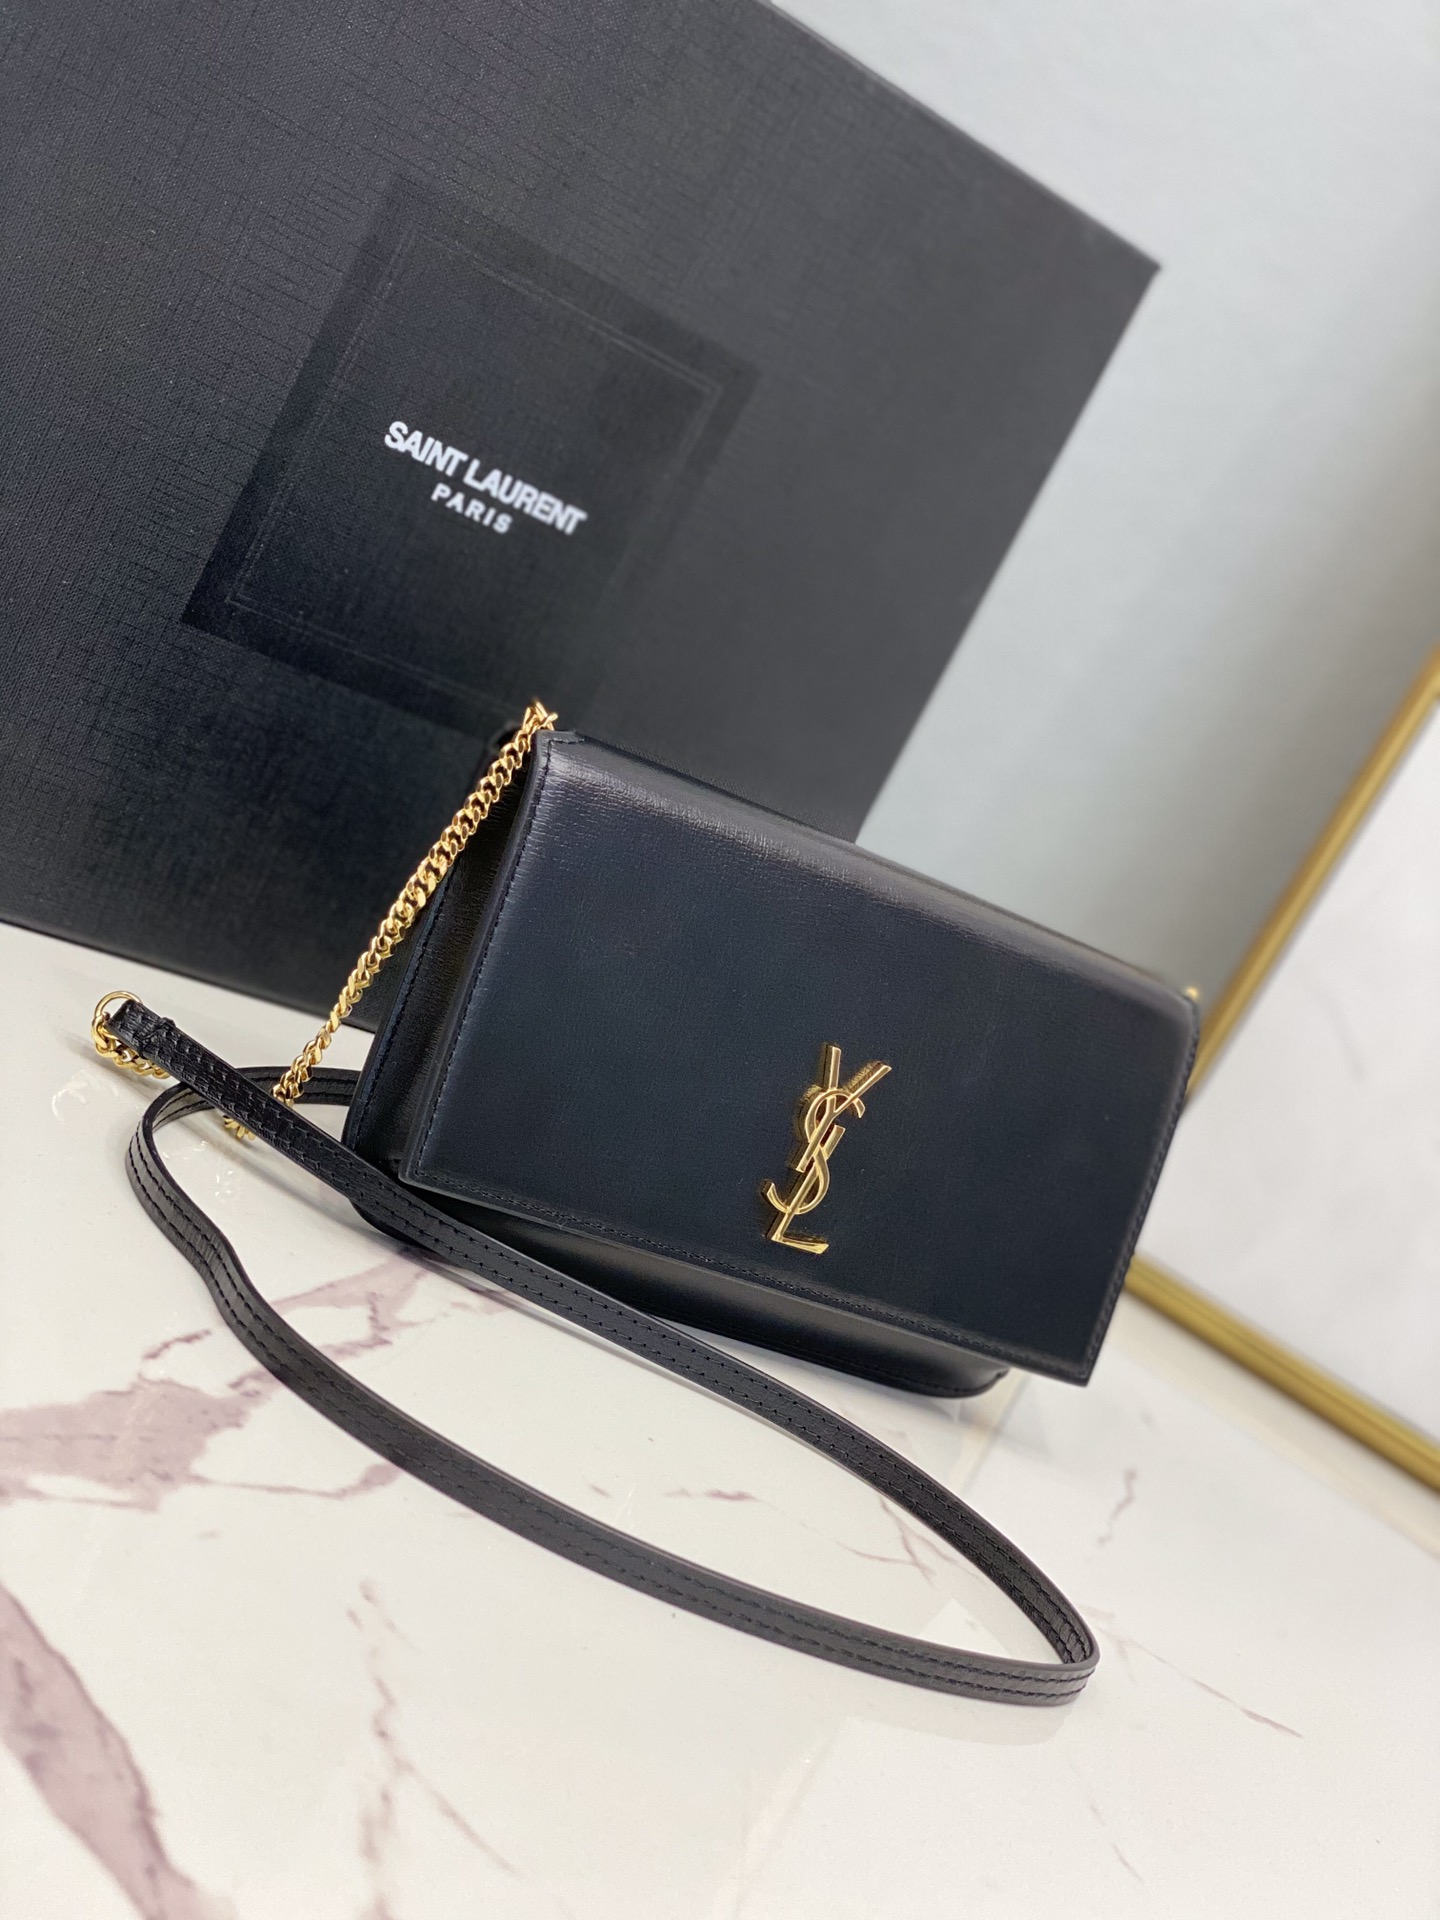 2020 cheap Saint Laurent monogram phone holder with strap in black smooth leather